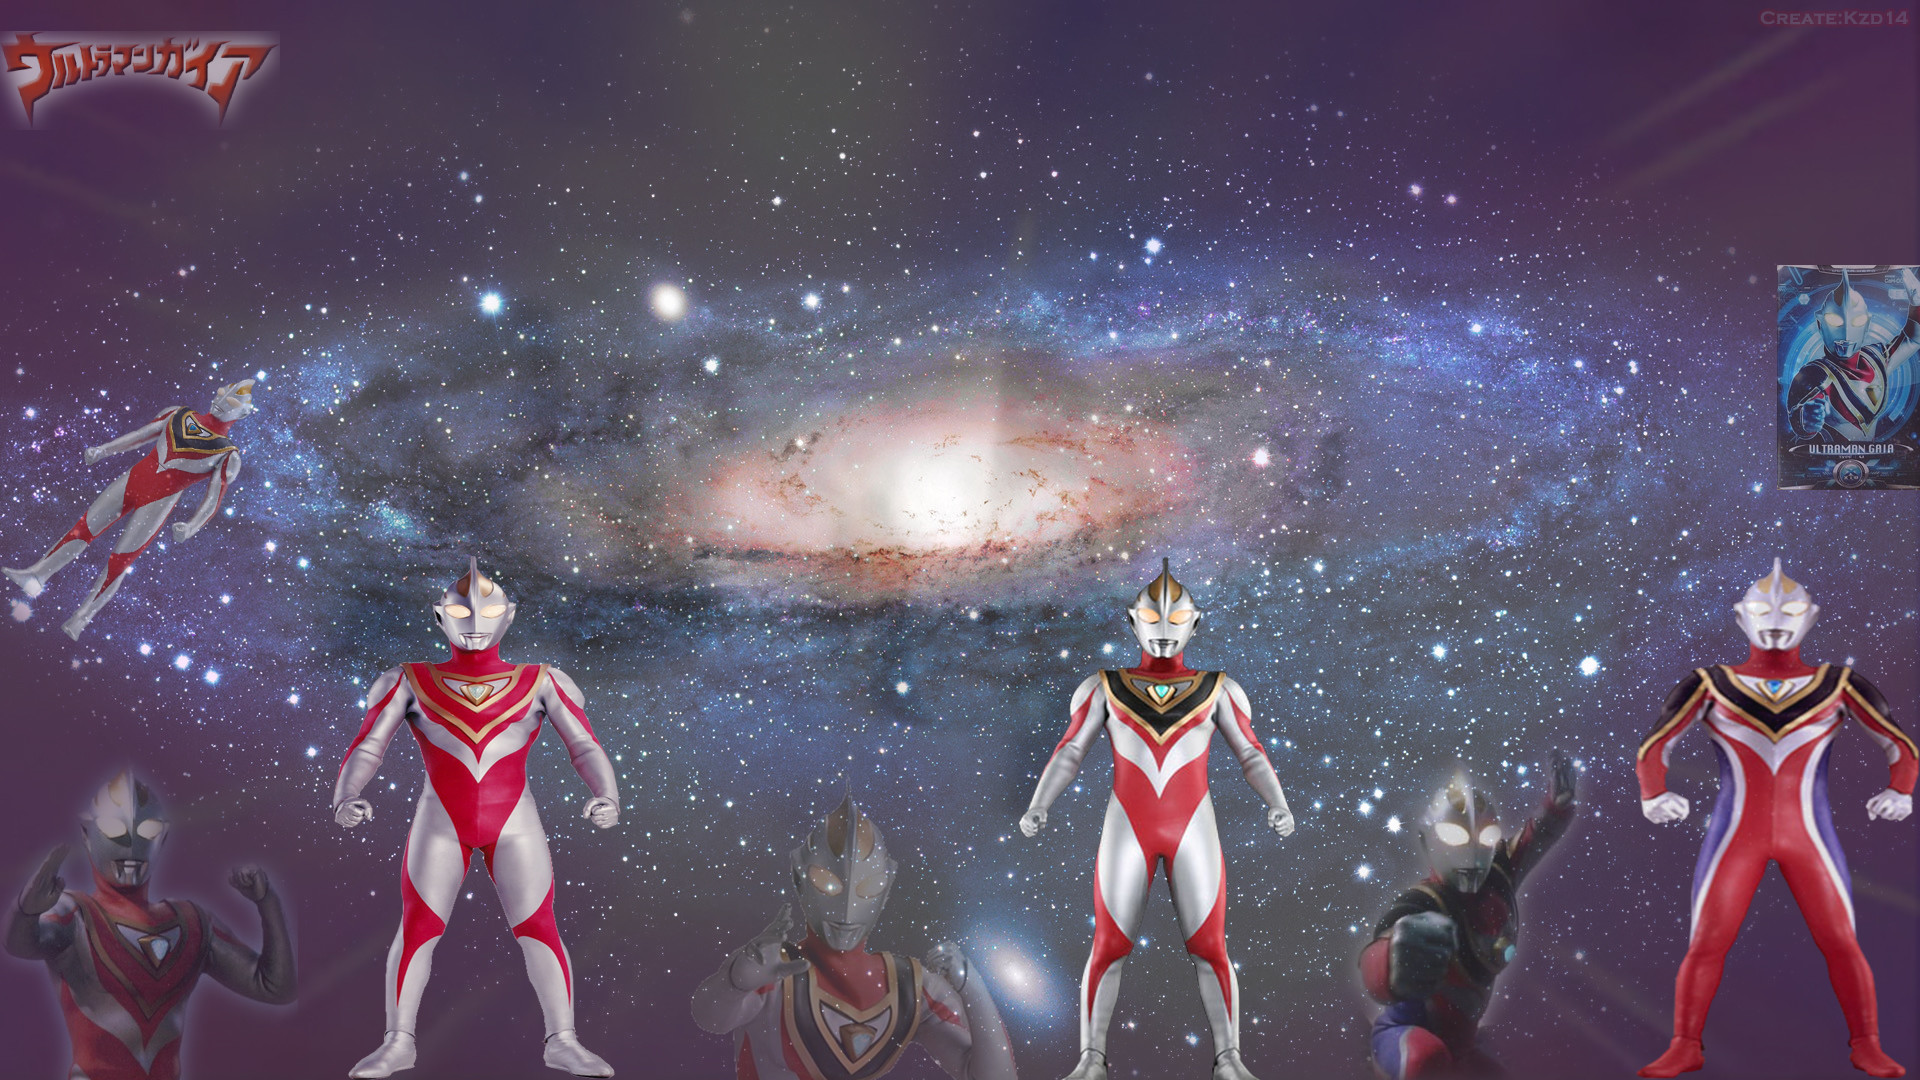 1920x1080 Ultraman gaia all form by Kzd14 Ultraman gaia all form by Kzd14